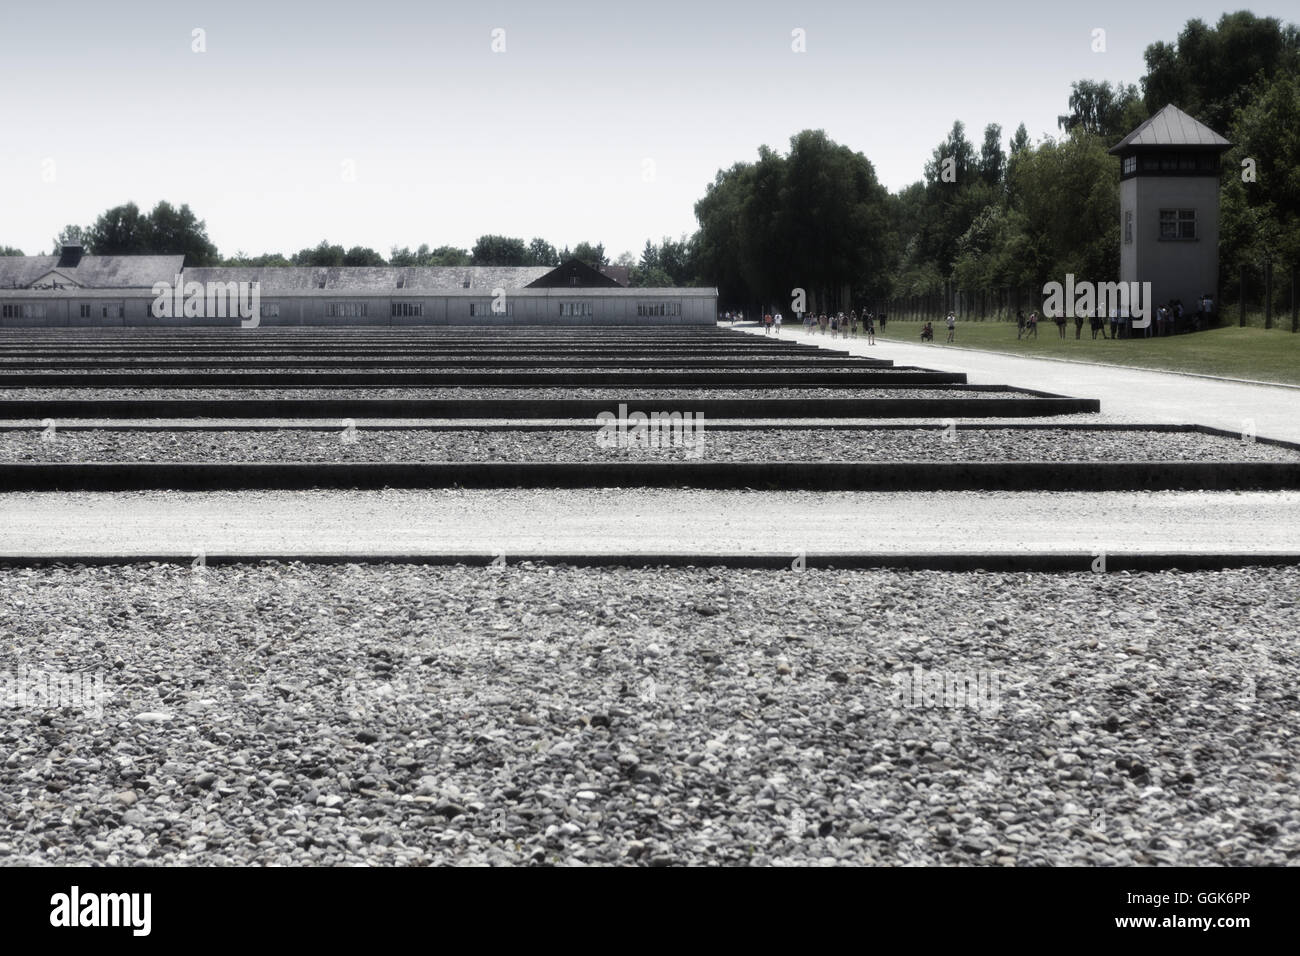 Grounds and ex-barrack foundations, Dachau Concentrations Camp, Dachau, Munich, Bavaria, Germany - Stock Image